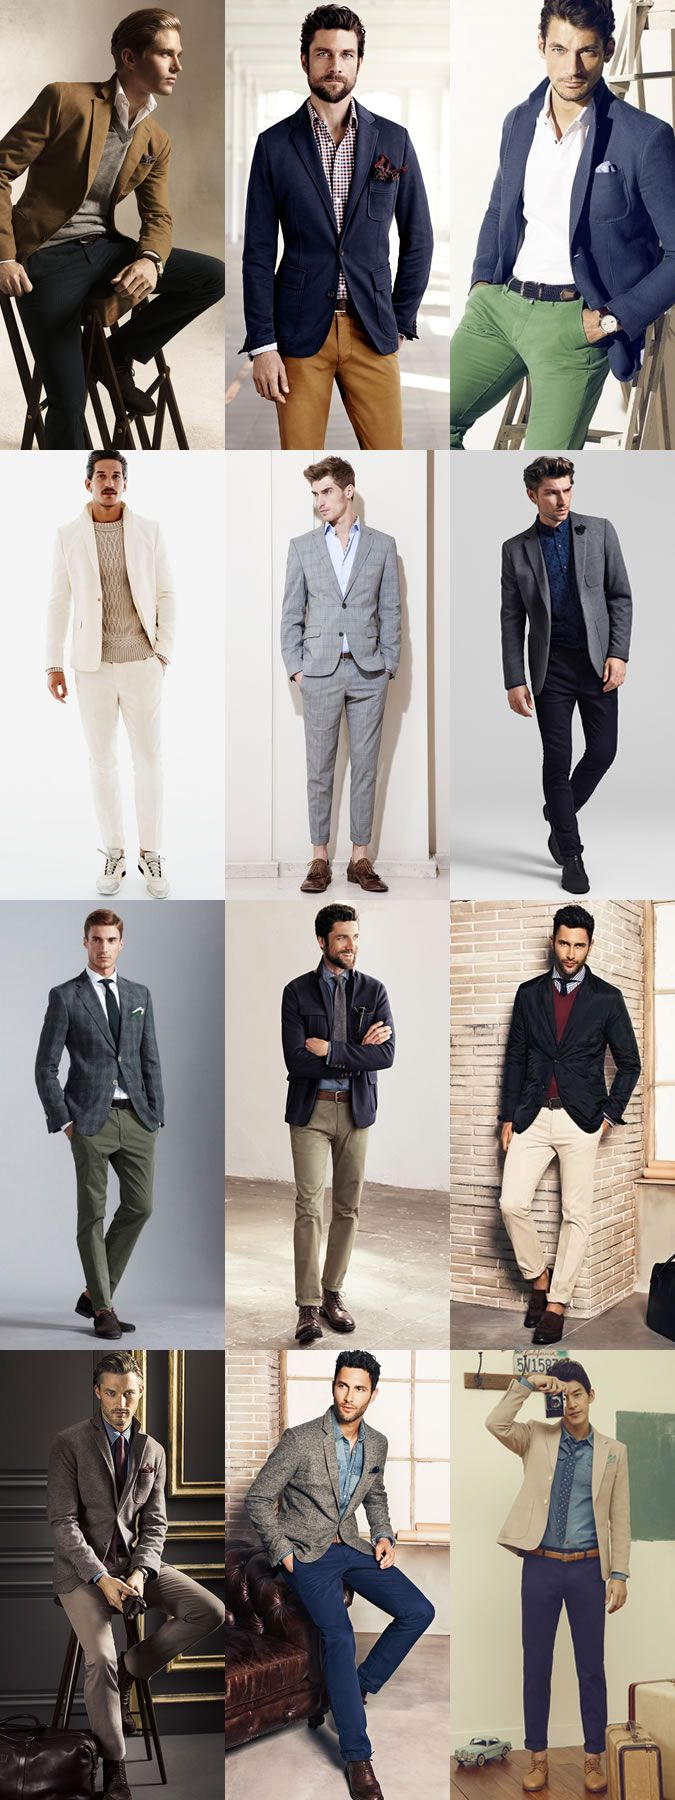 Dress code for smart casual smart casual dress code for men pictures - Interview Attire Creative Industries Smart Casual Combinations Outfits